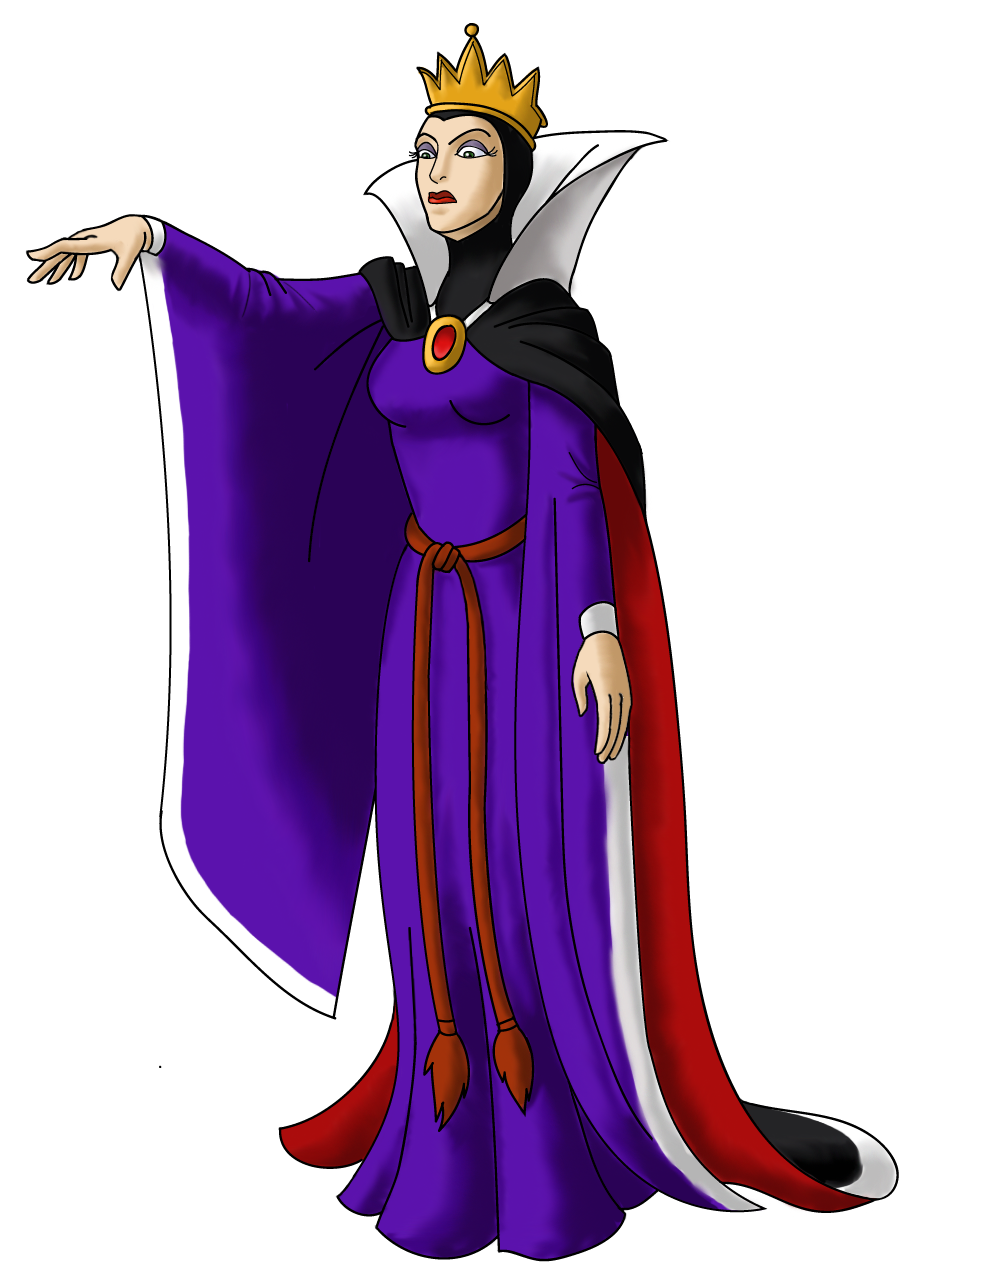 Queen guimhilde ugly disney characters clipart clipart free Disney Villain October 20: Queen Grimhilde by PowerOptix on ... clipart free